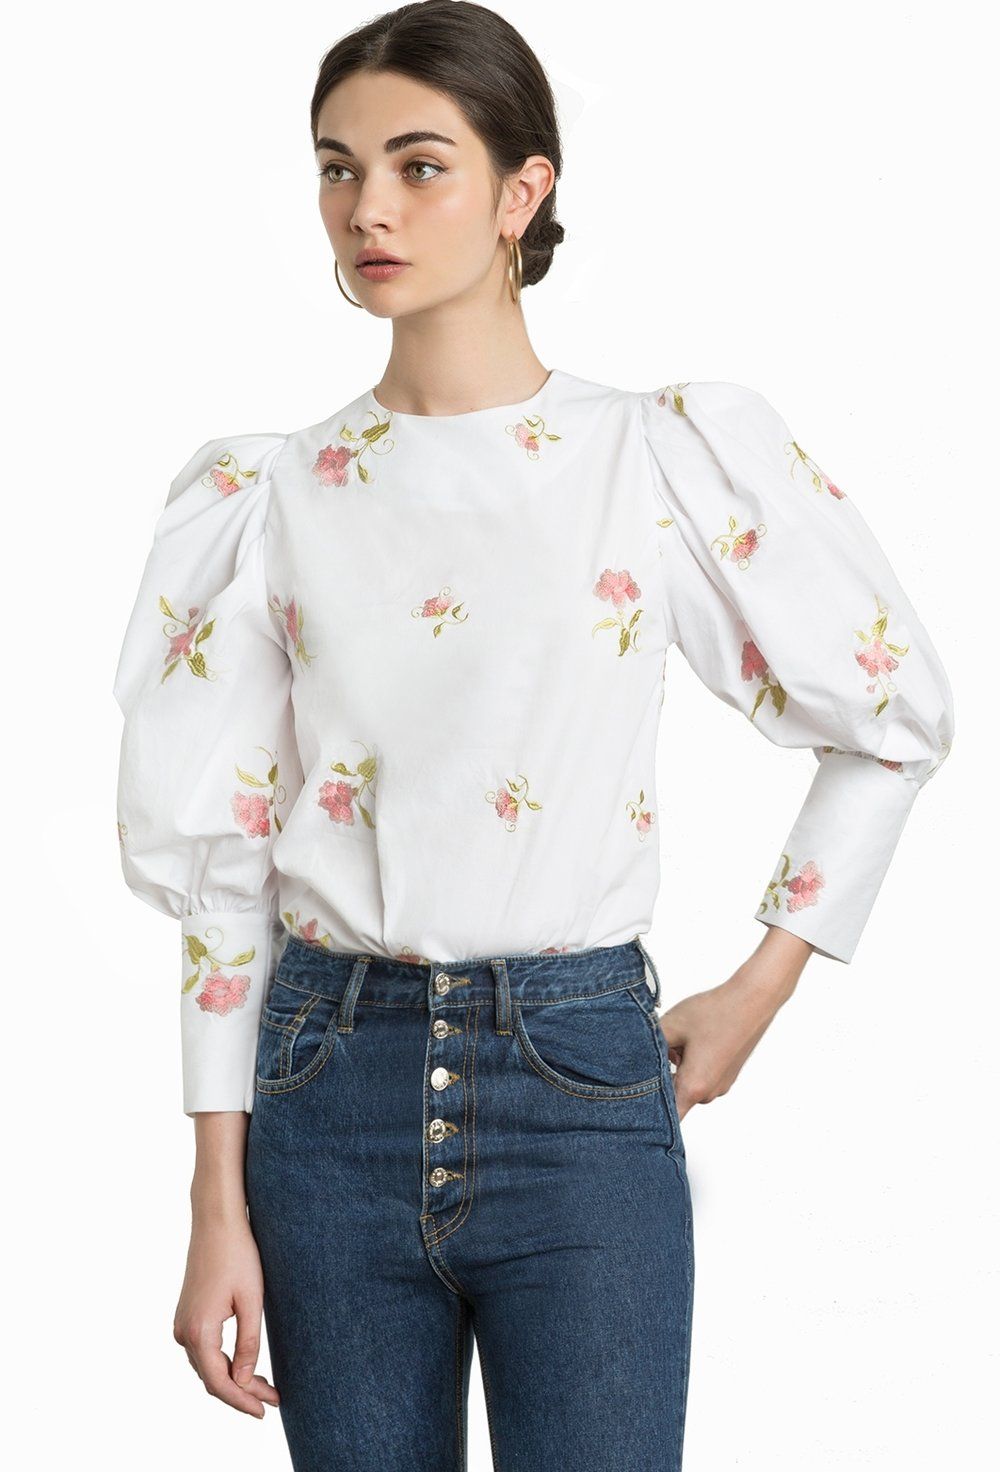 http-::www.pixiemarket.com:floral-embroidered-puffy-sleeve-shirt.html.jpg